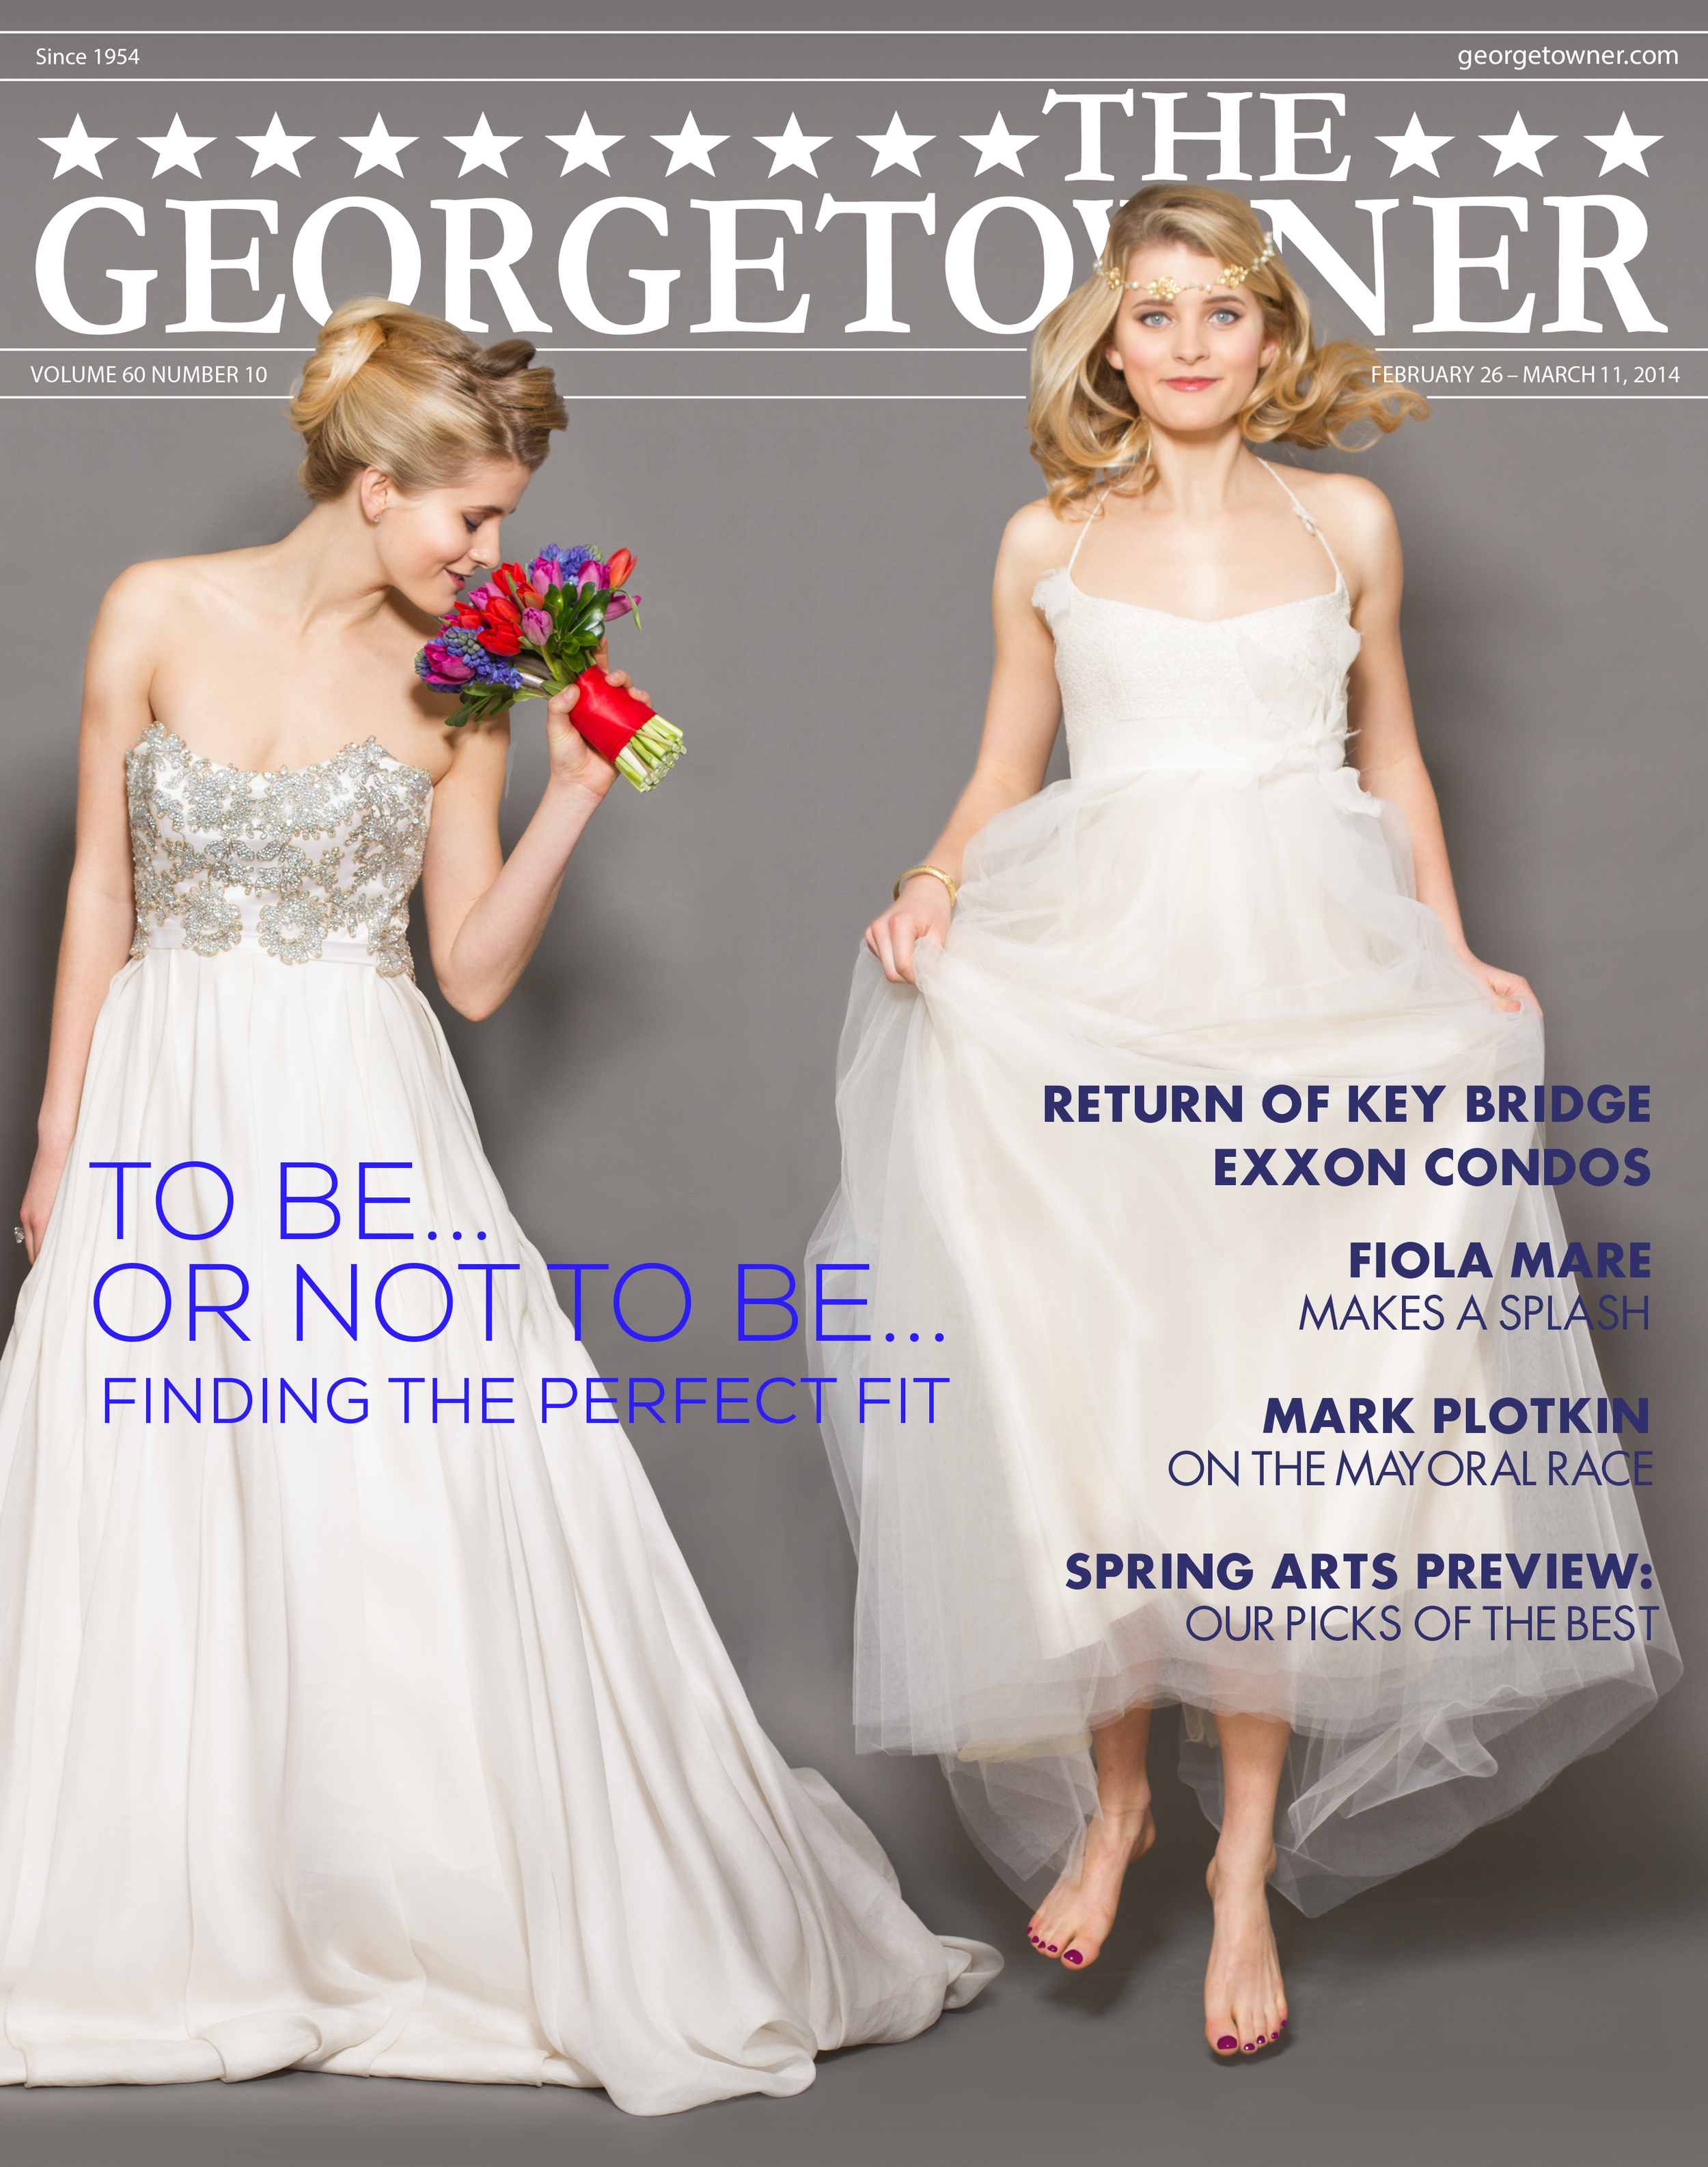 Hot off the press! Check out The Georgetowner's